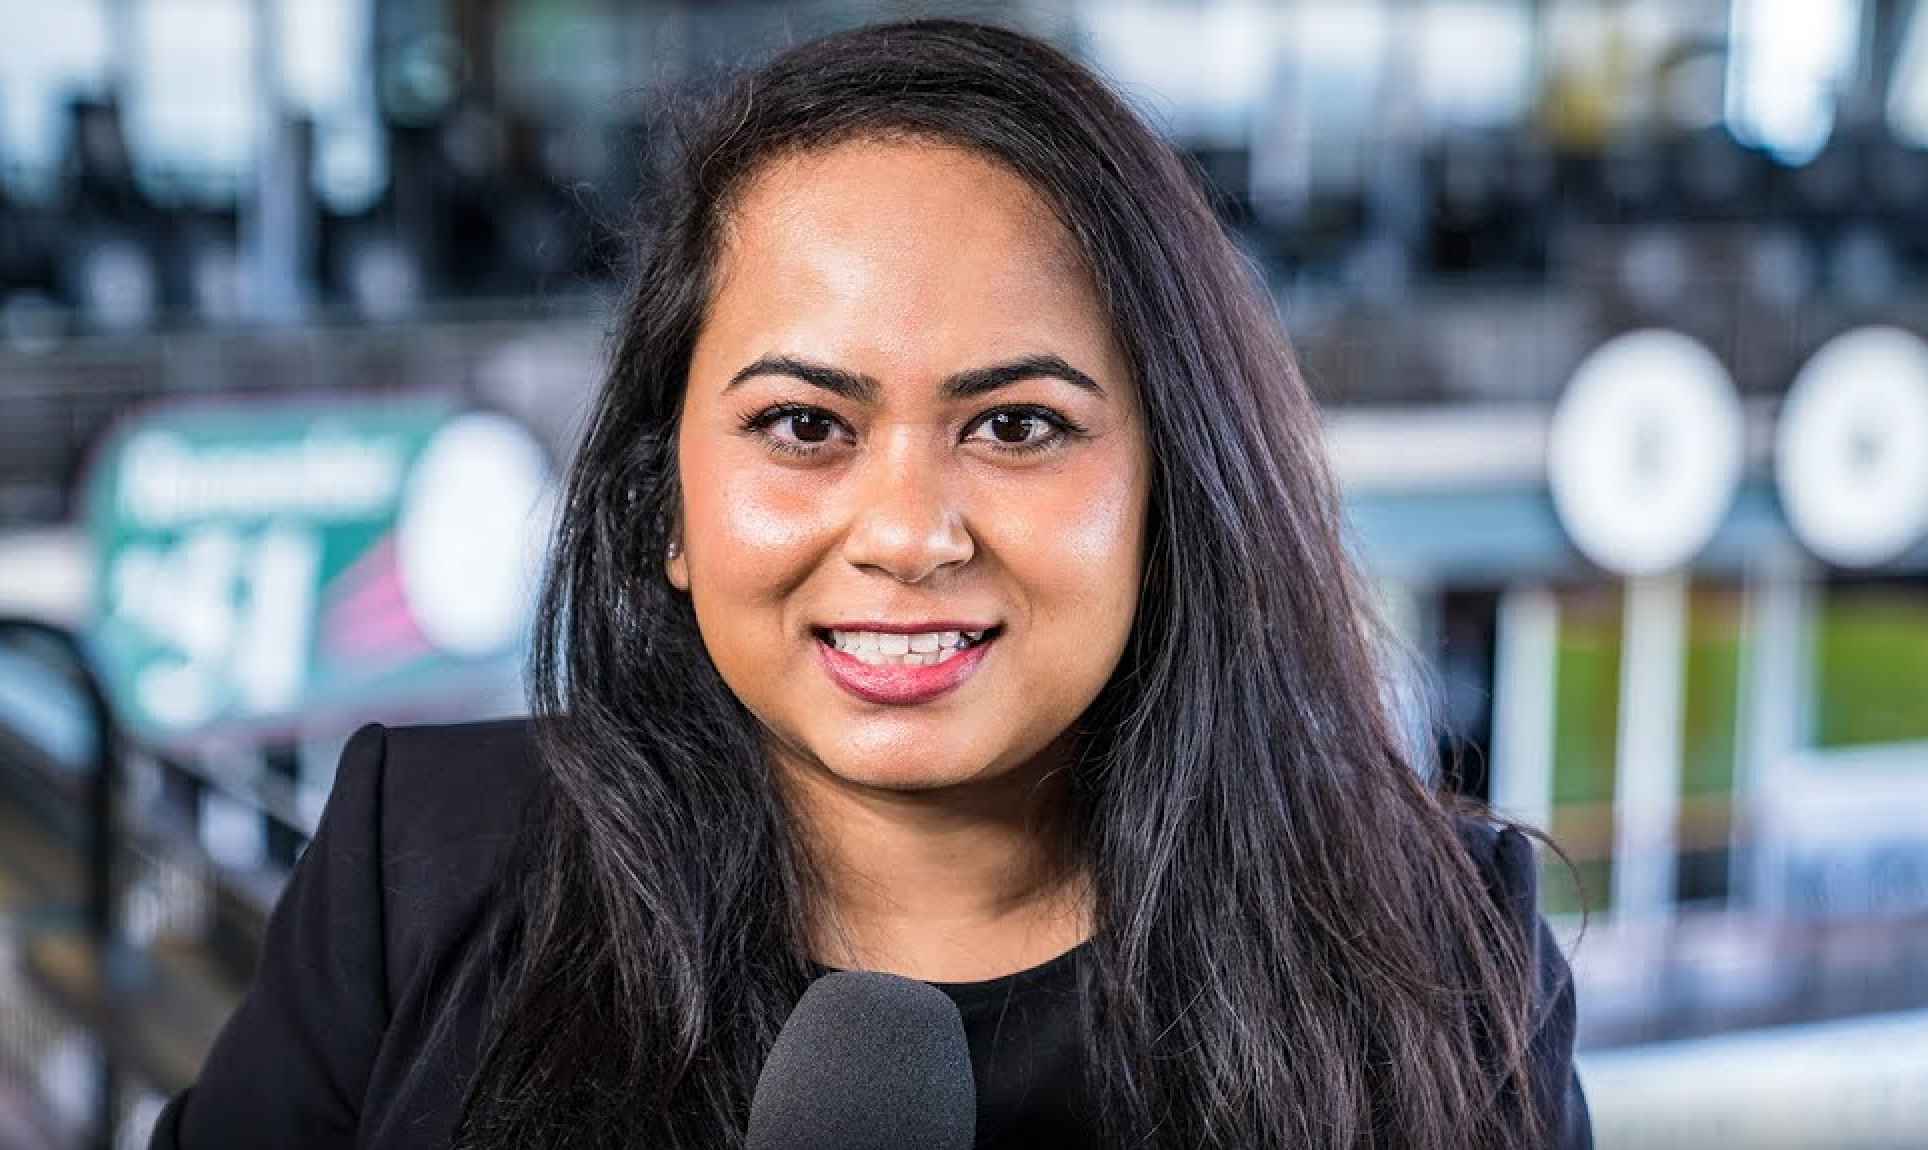 Growth Strategy for Product Development in the Time of COVID19, with Gayatri Sarkar